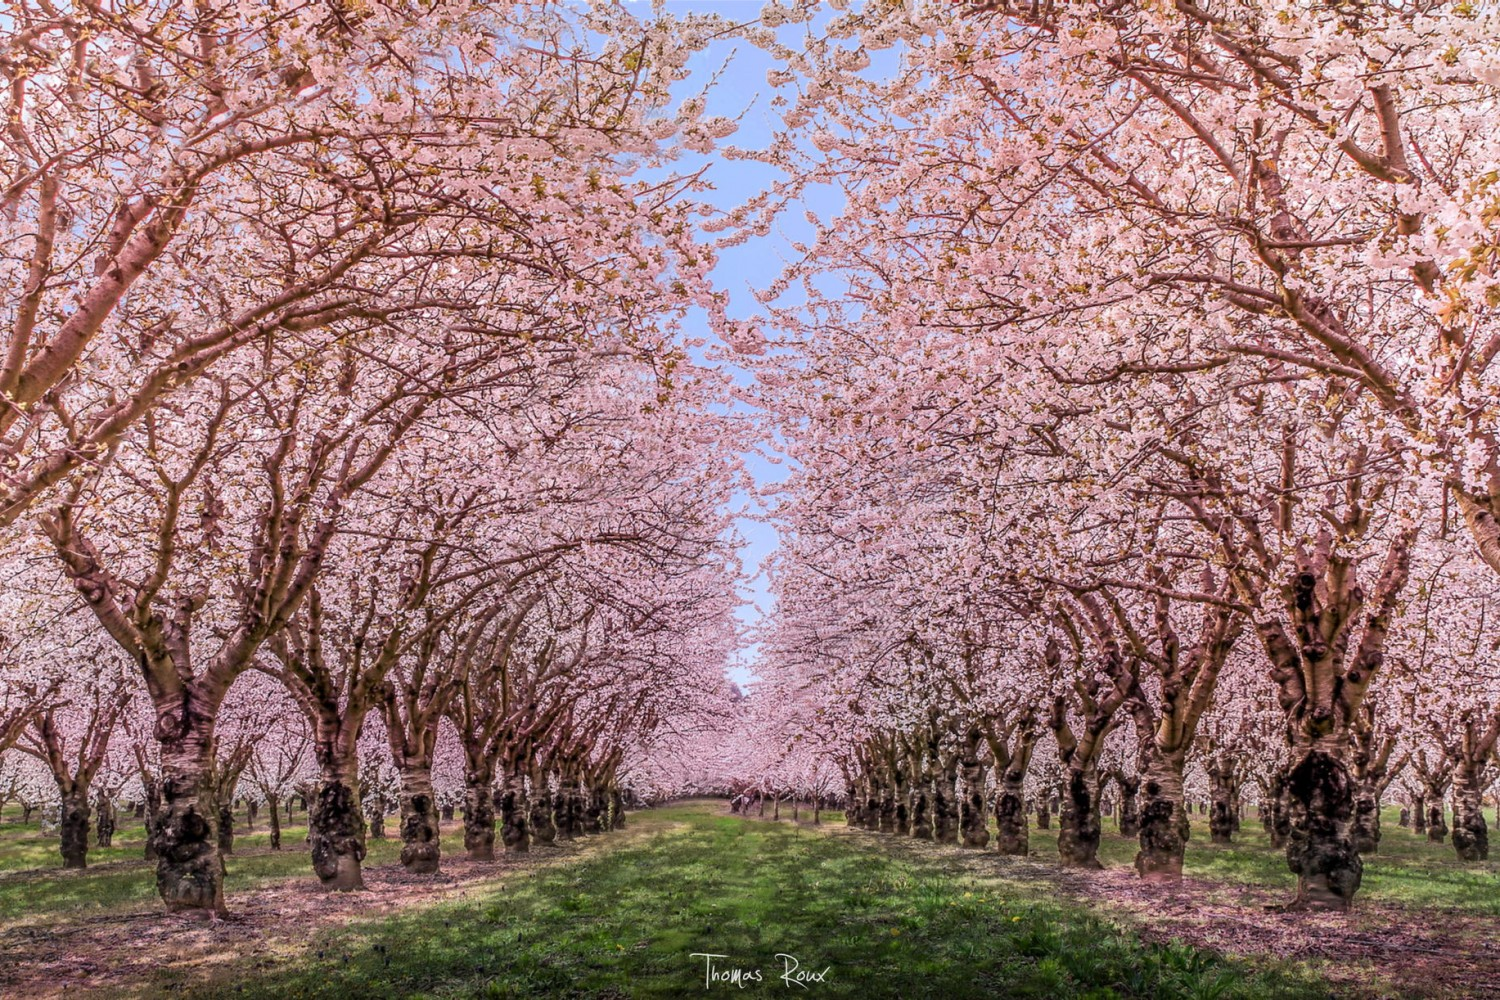 45 Charming Cherry Blossoms That Will Inspire Your Day